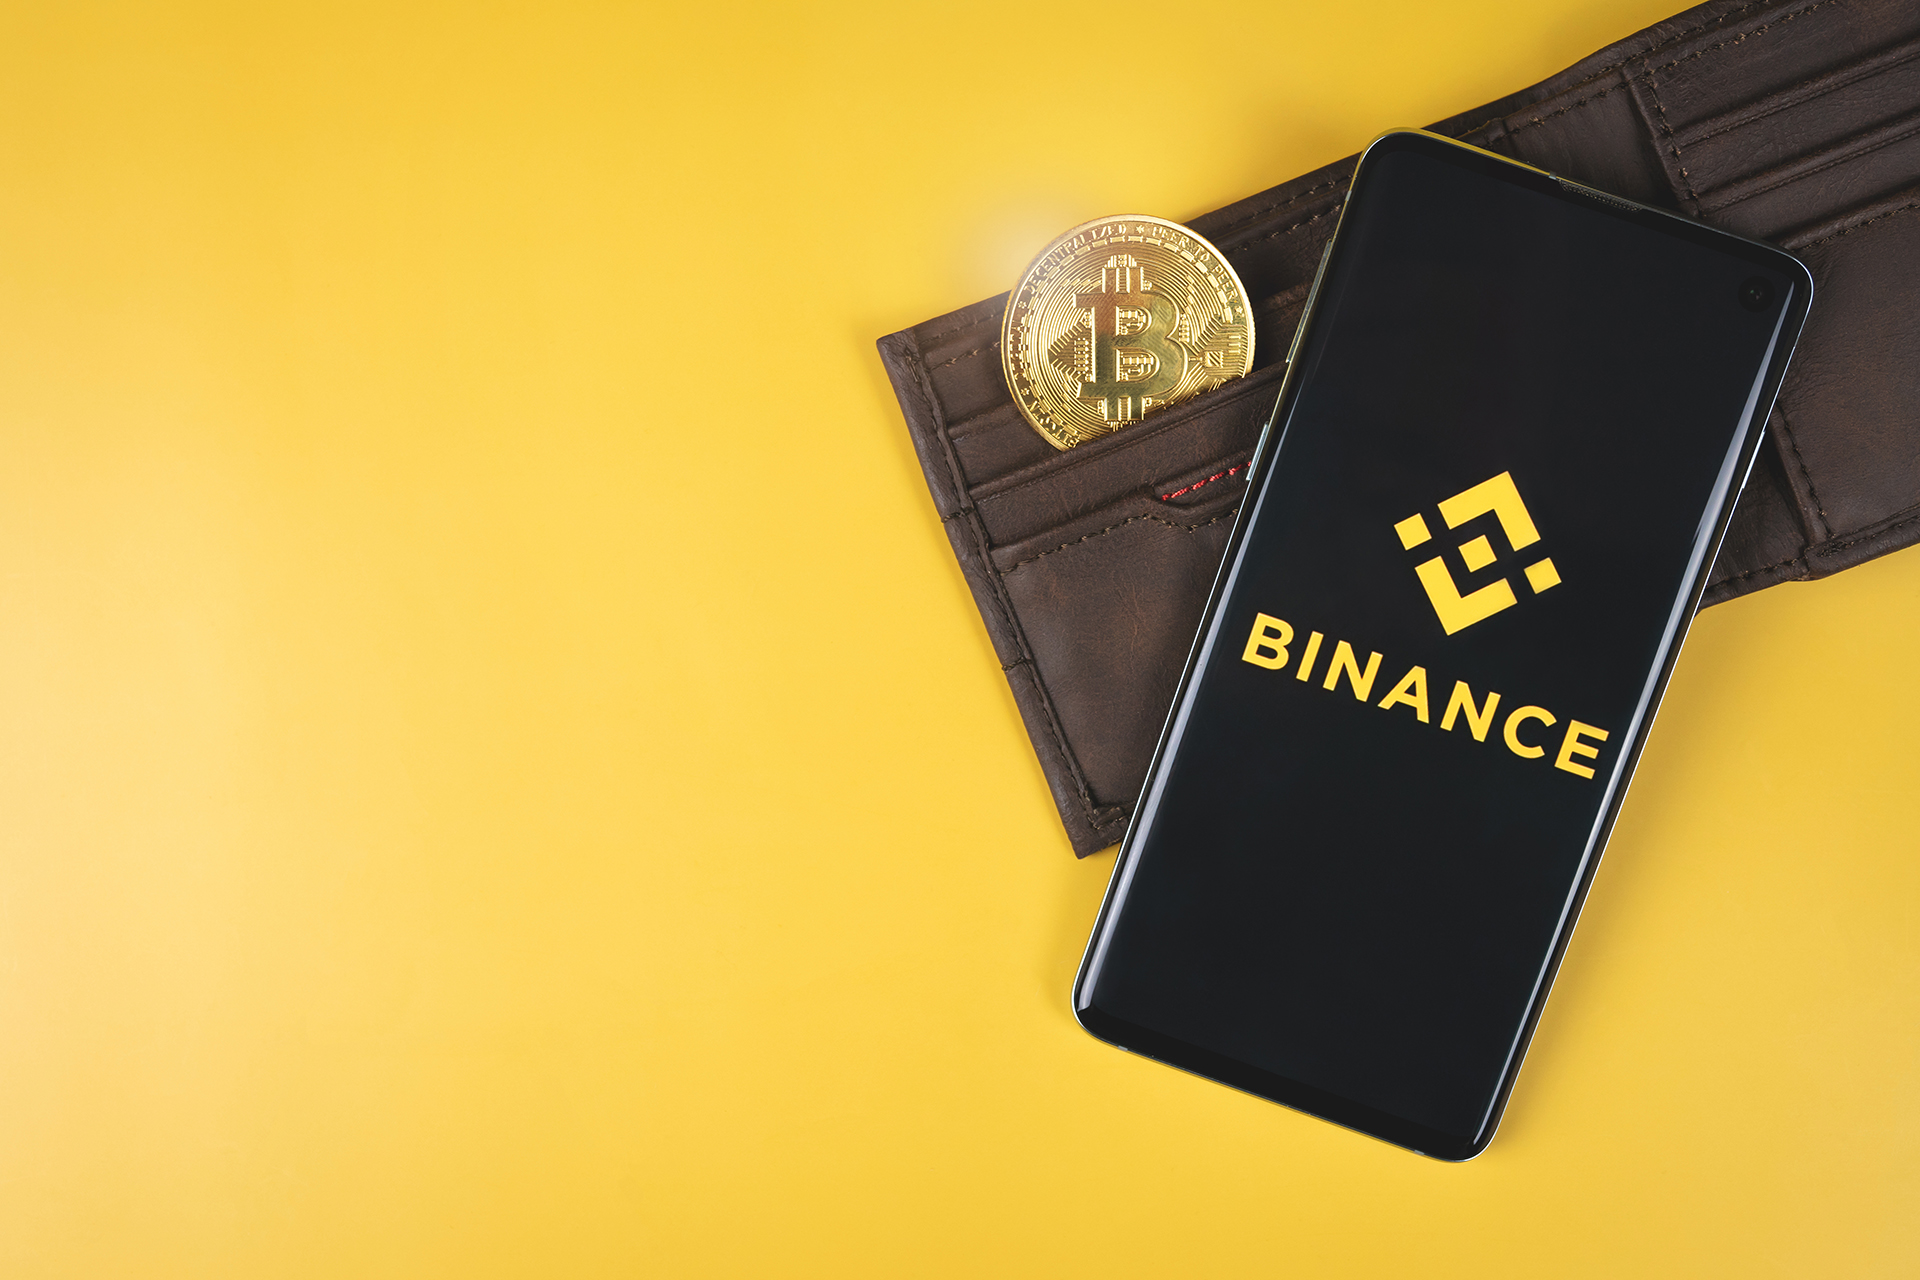 Binance 'will go public within 3 years' despite legal woes